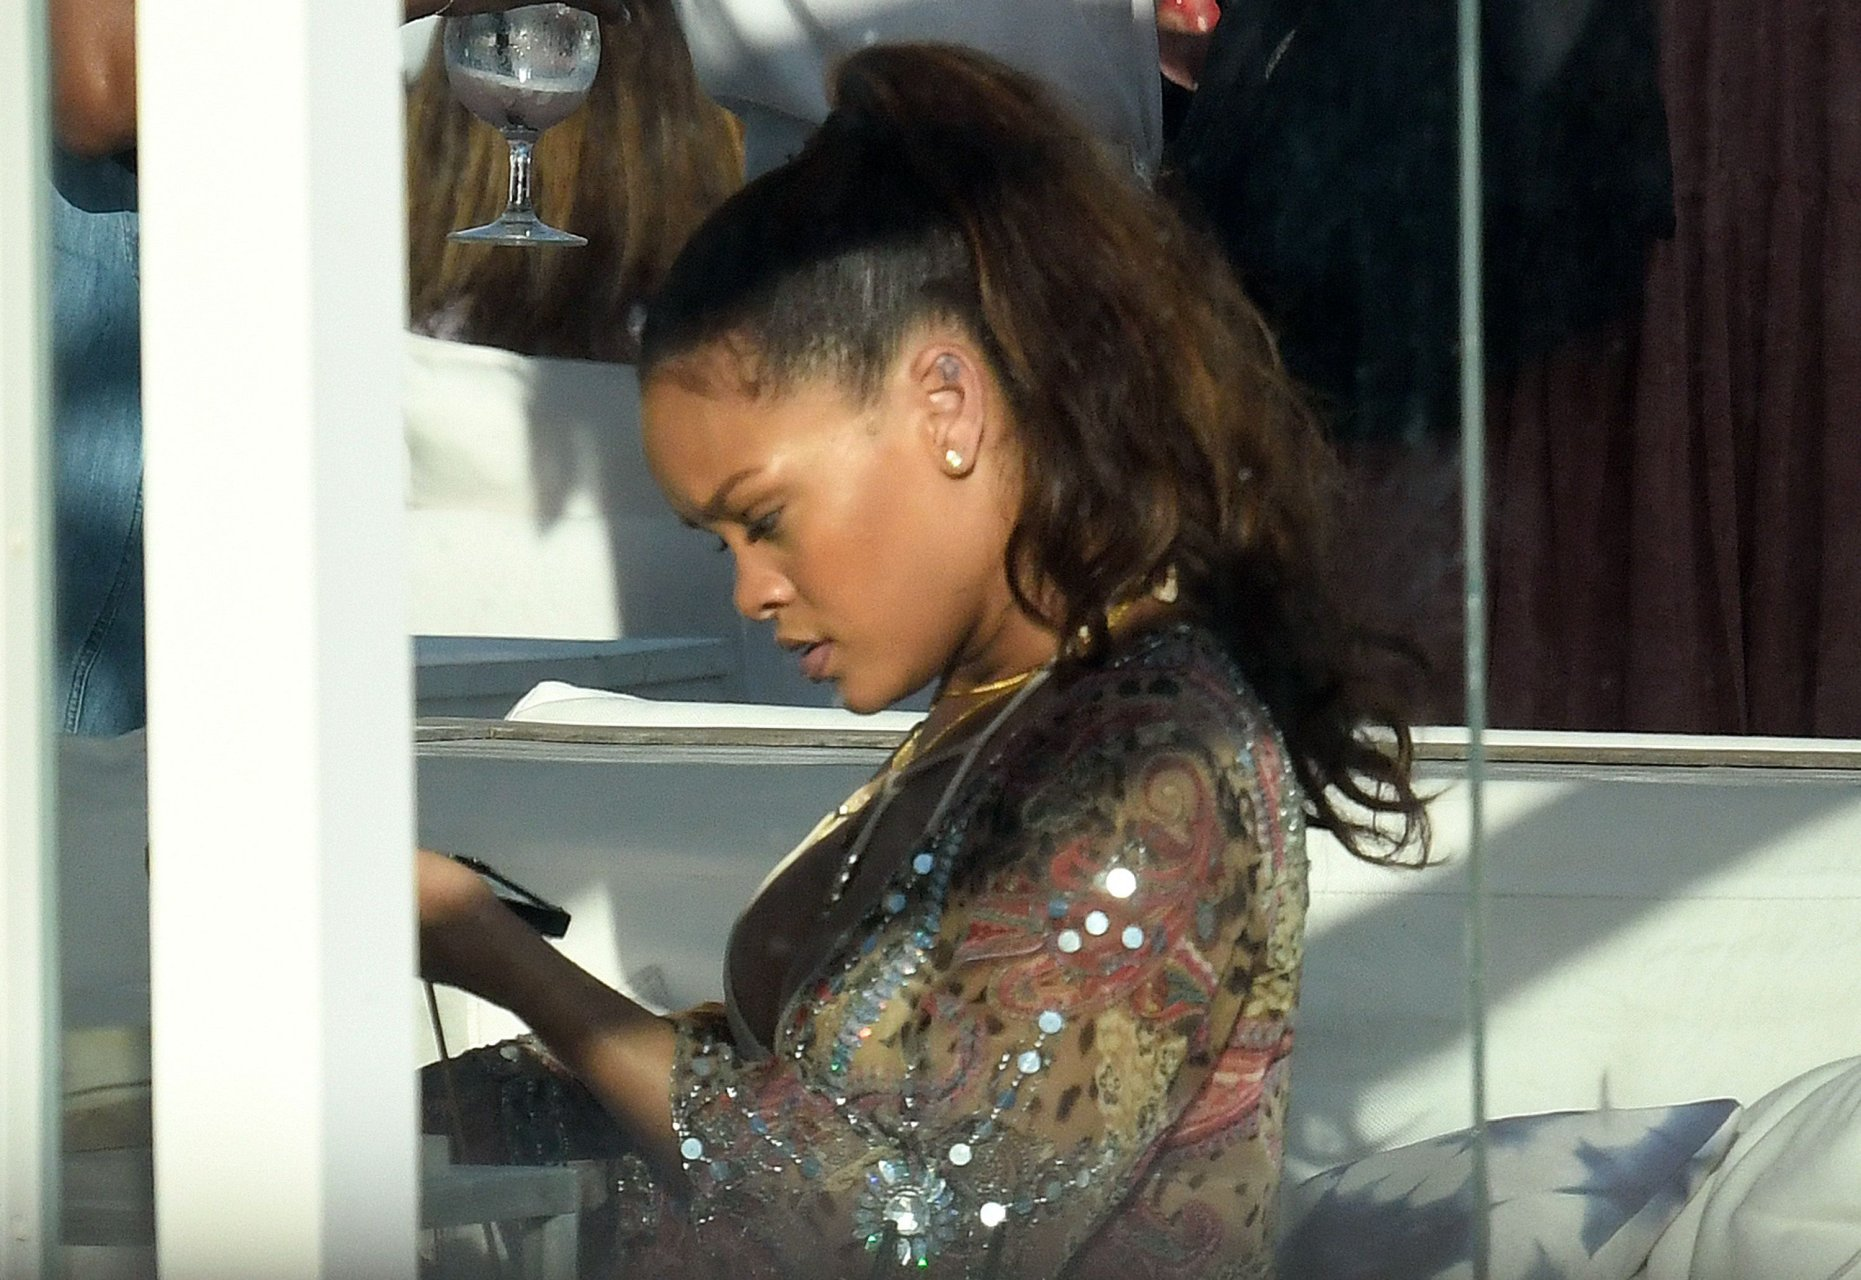 Rihanna sex tape online in Sydney